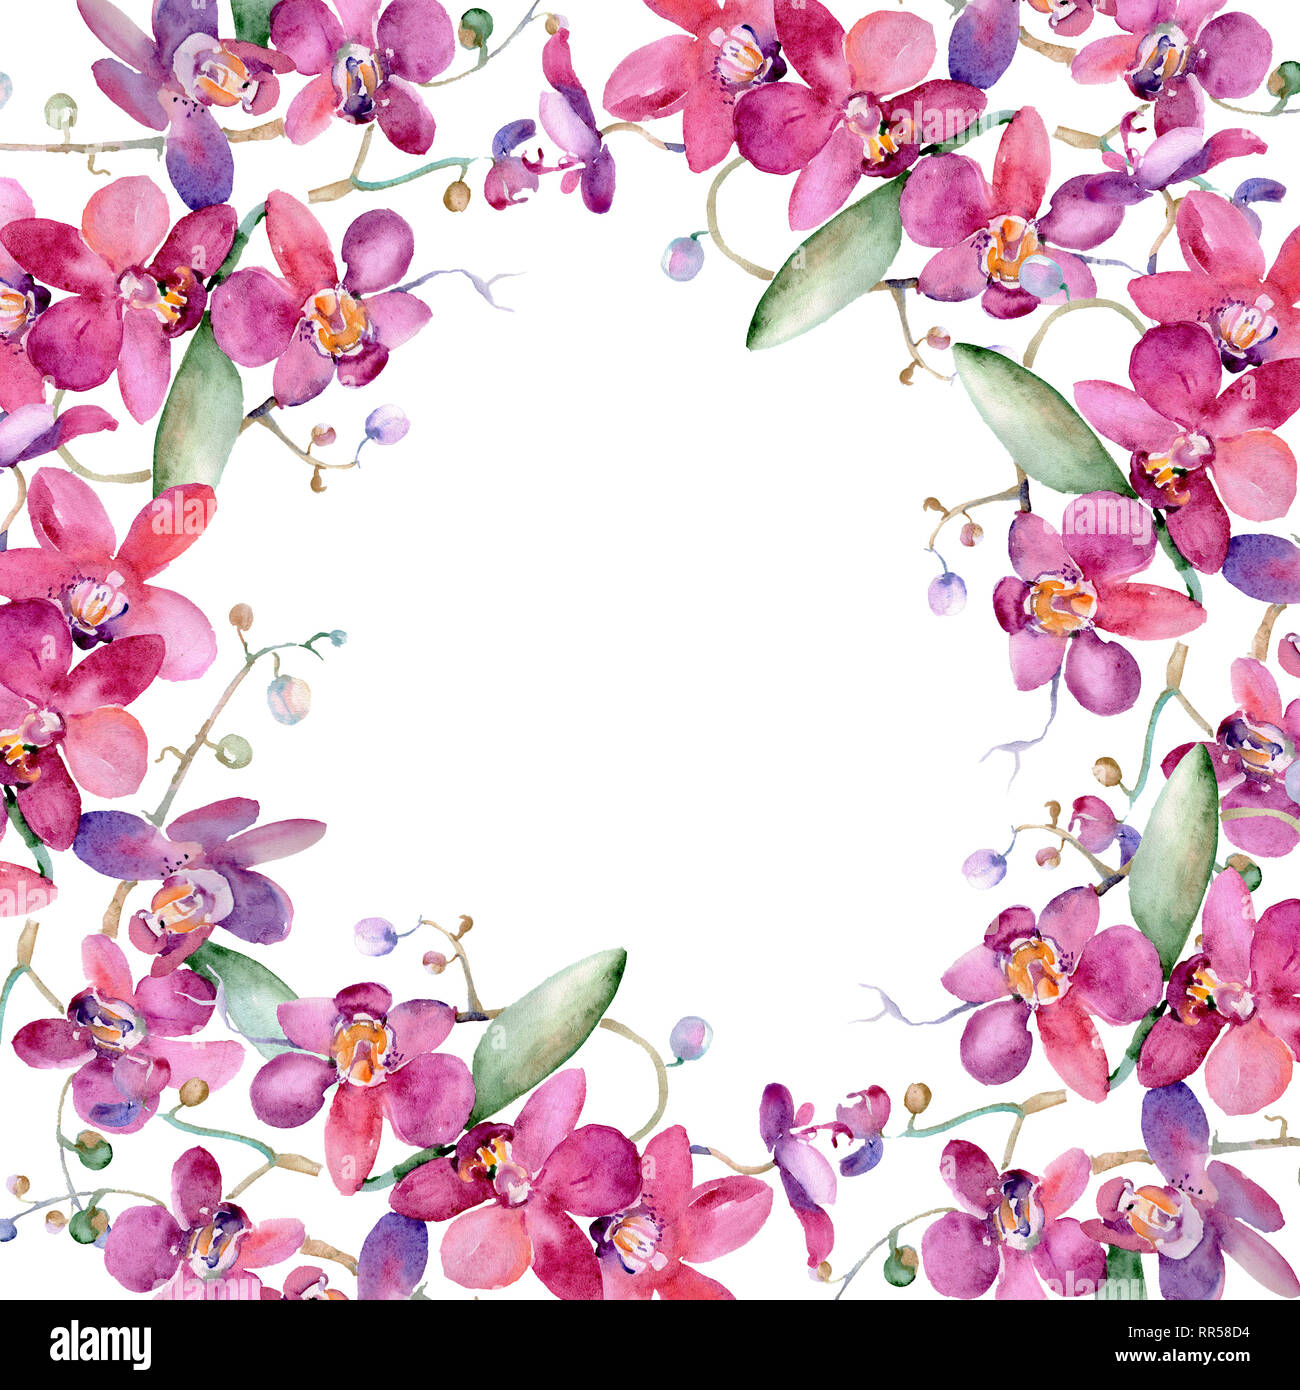 Pink Orchid Bouquet Floral Botanical Flower Watercolor Background